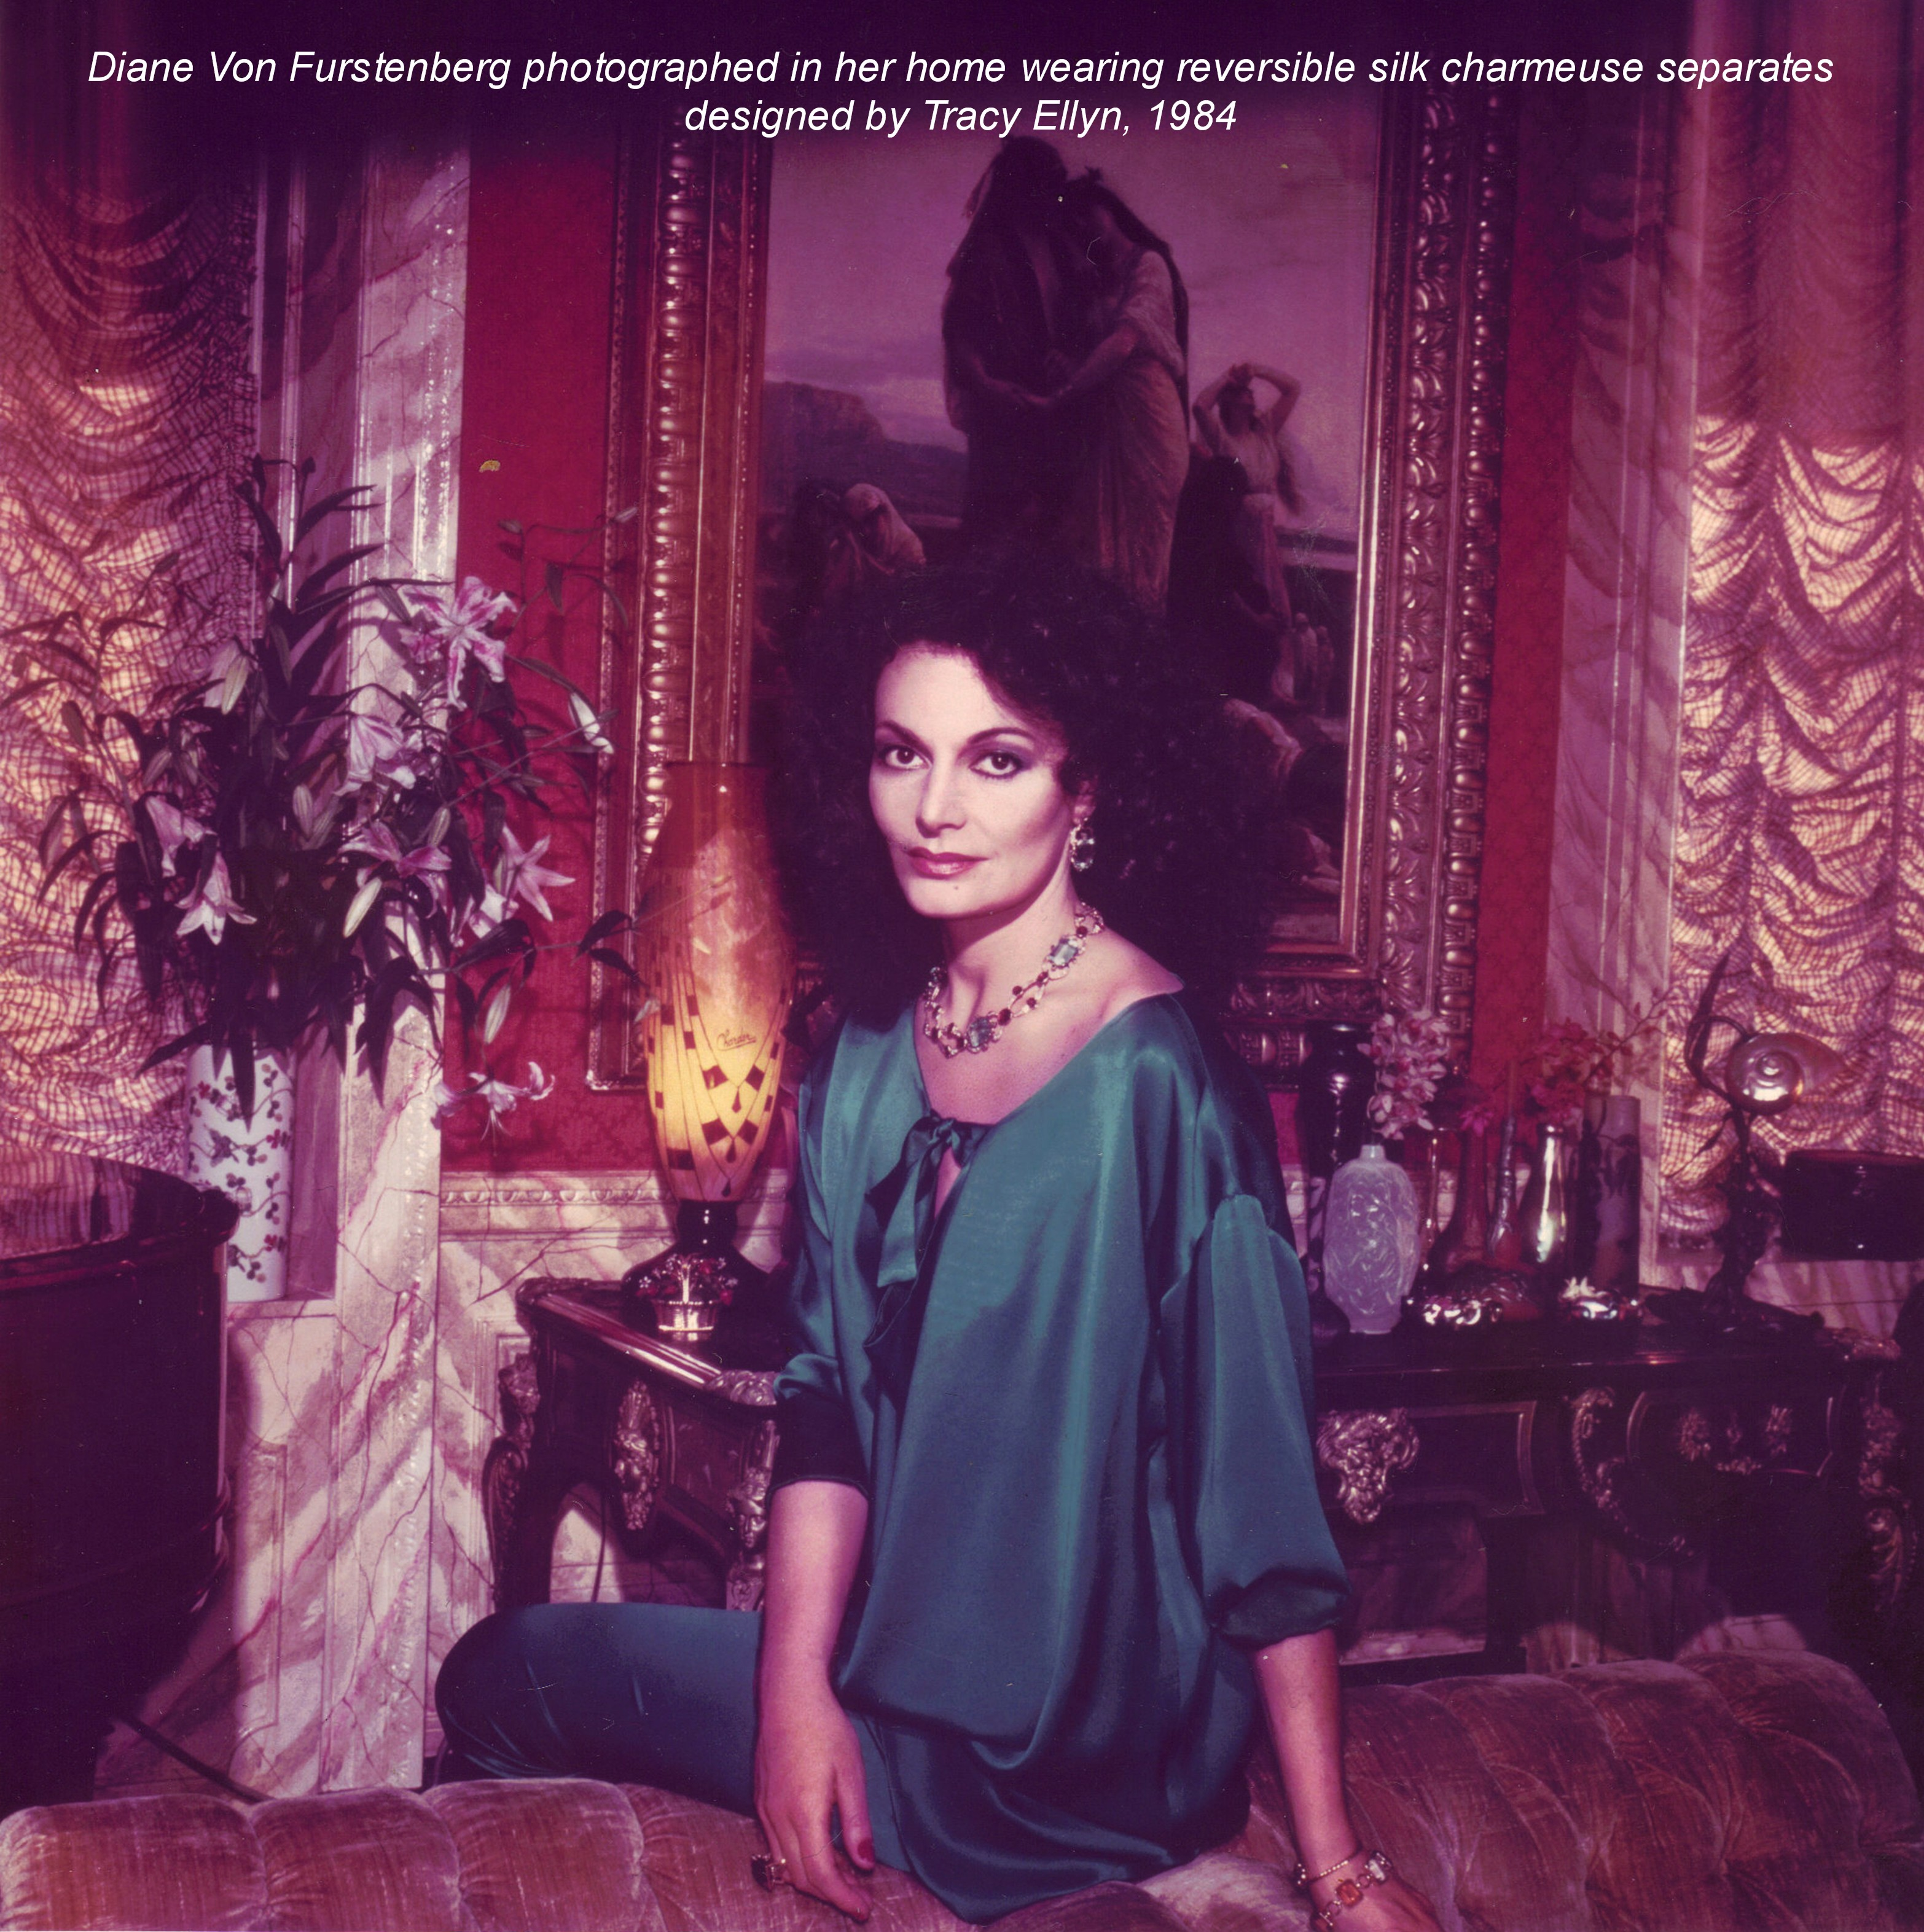 Tracy Ellyn for Diane Von Furstenber